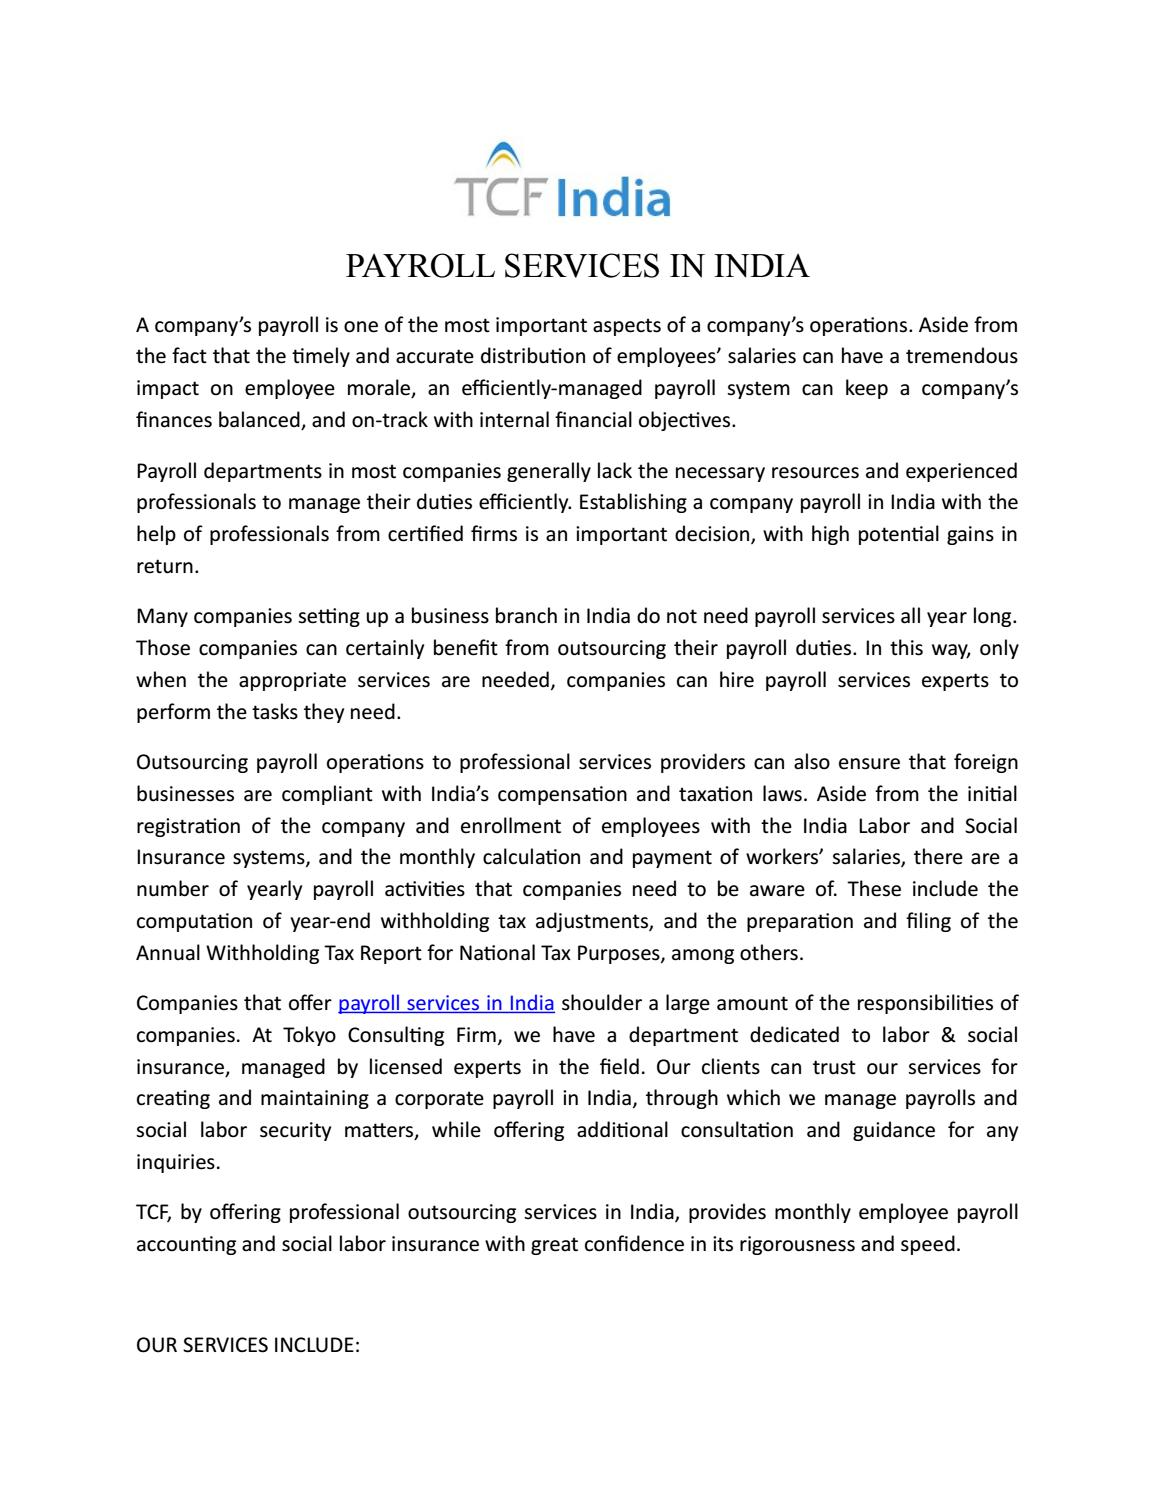 PAYROLL SERVICES IN INDIA by Tokyo Consulting Firm - issuu